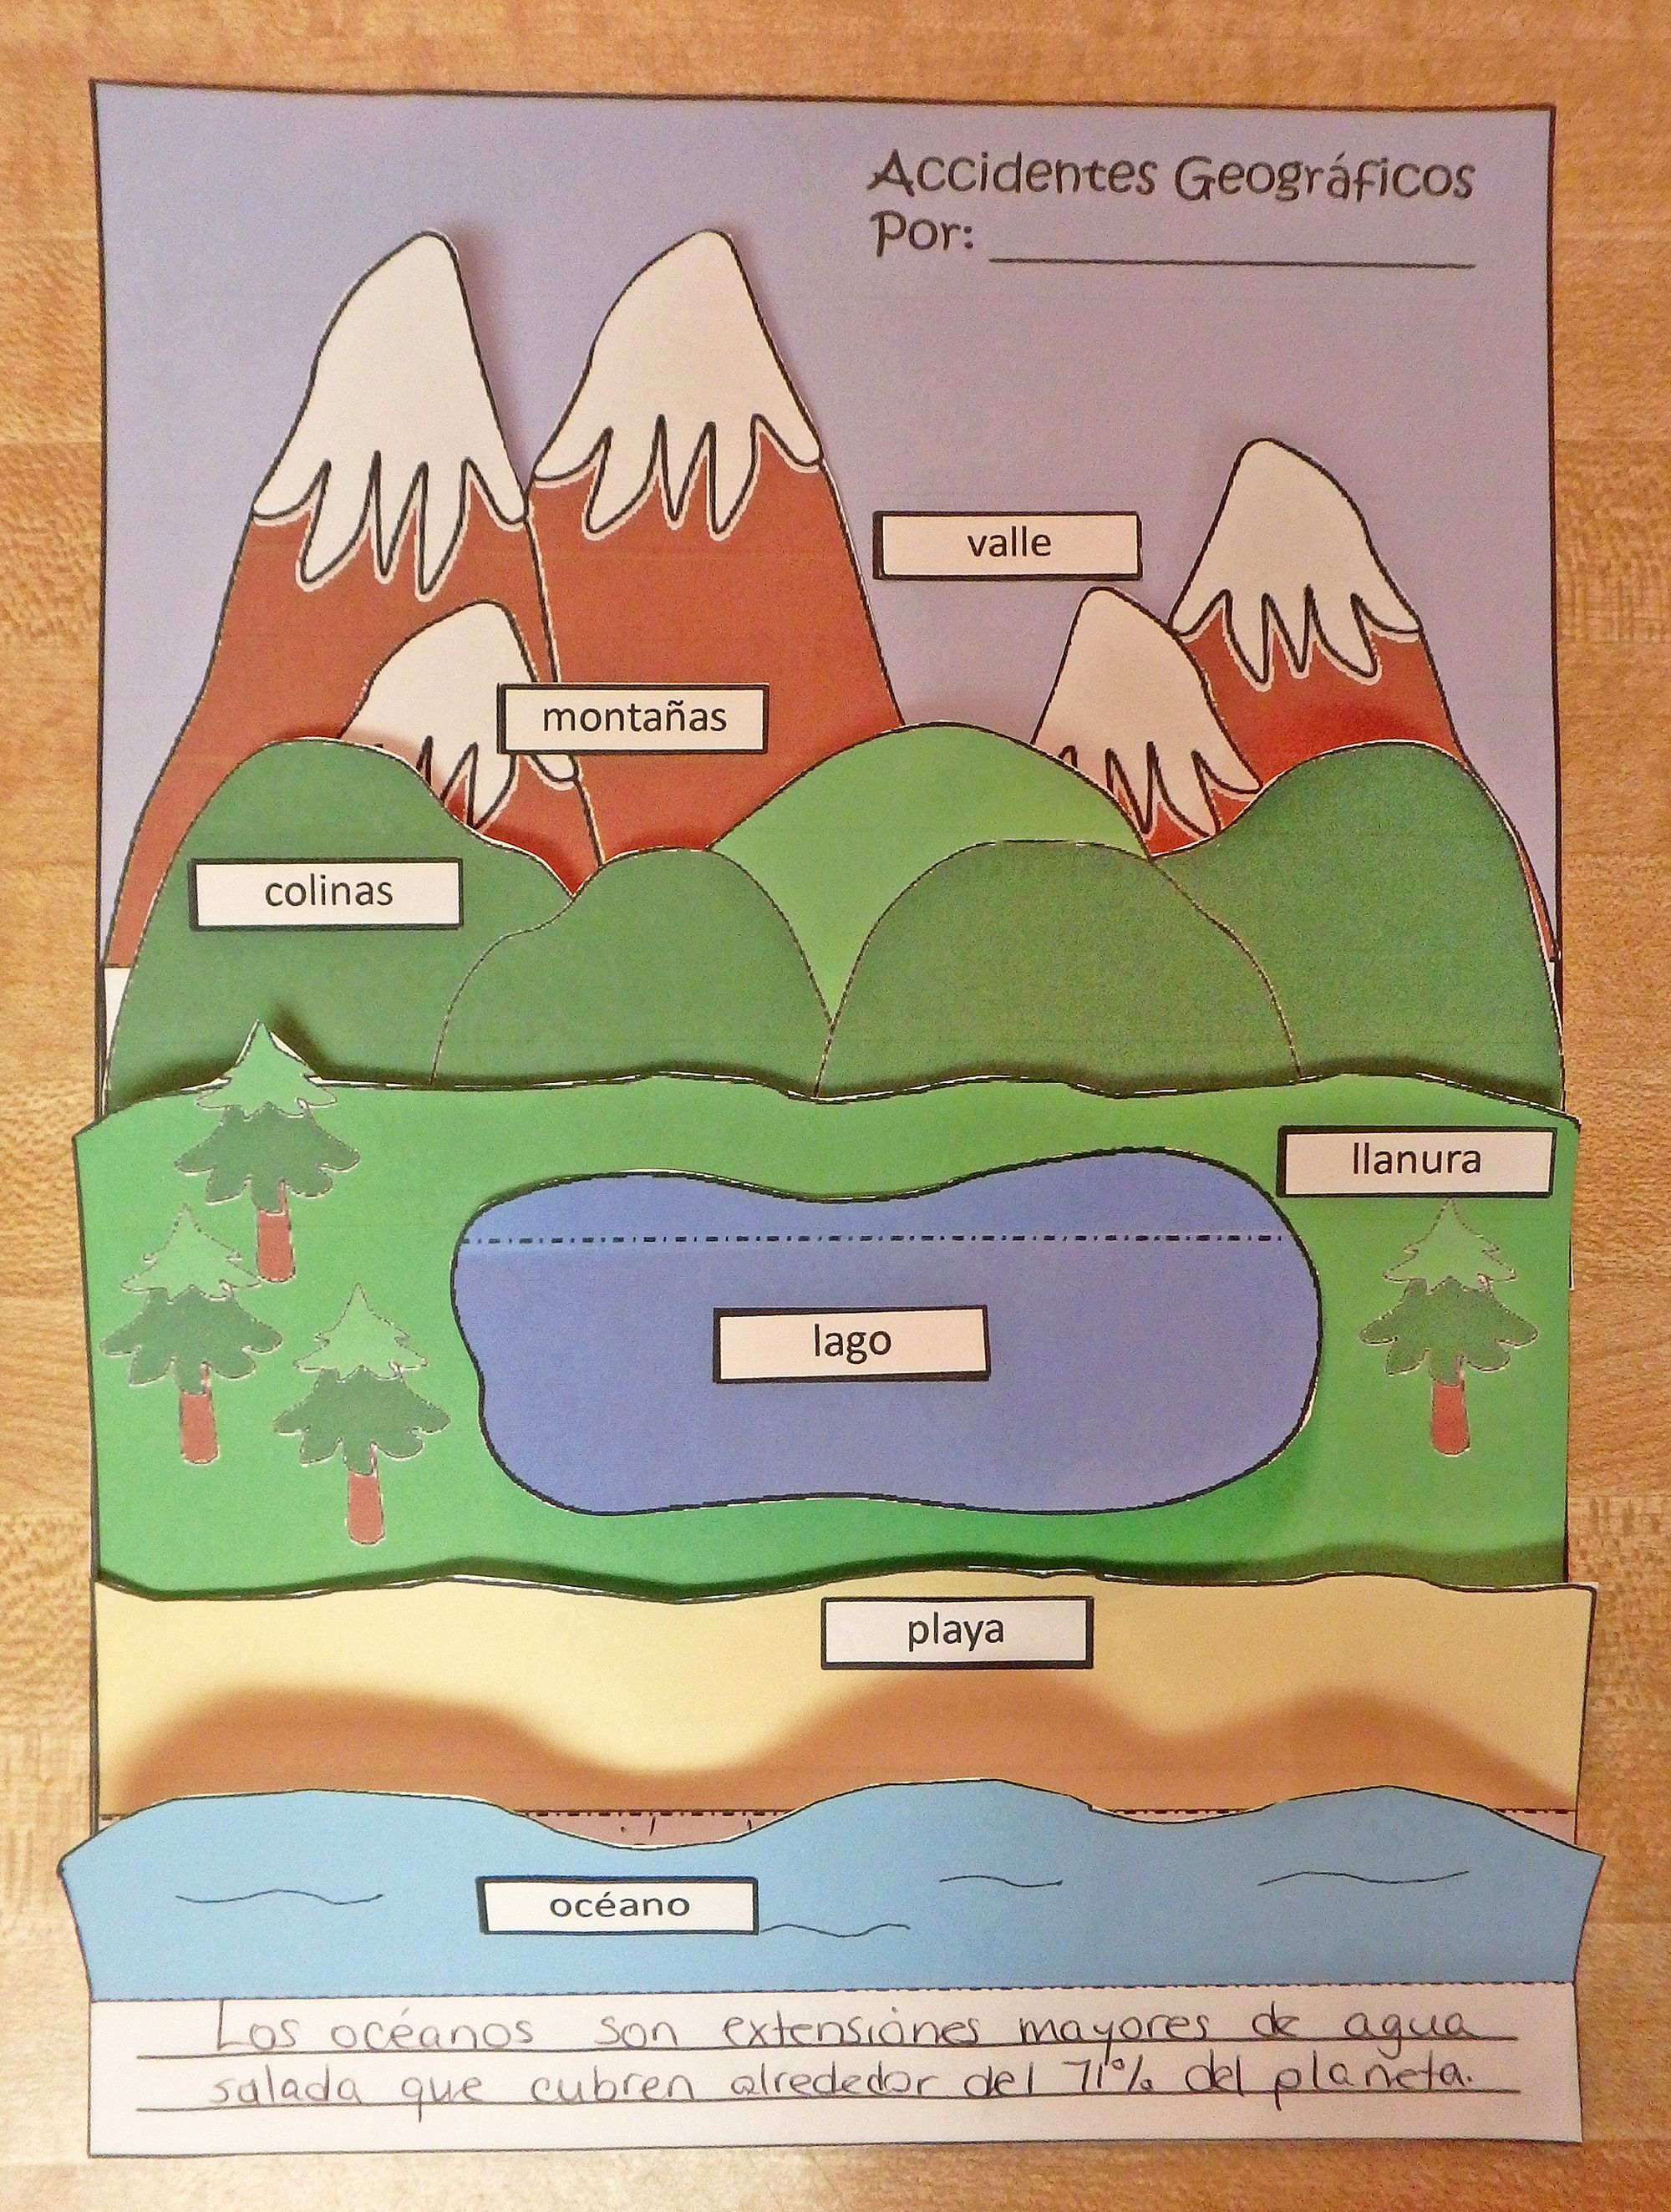 Landforms Accidentes Geograficos Layered Shapebook In English And Or Spanish